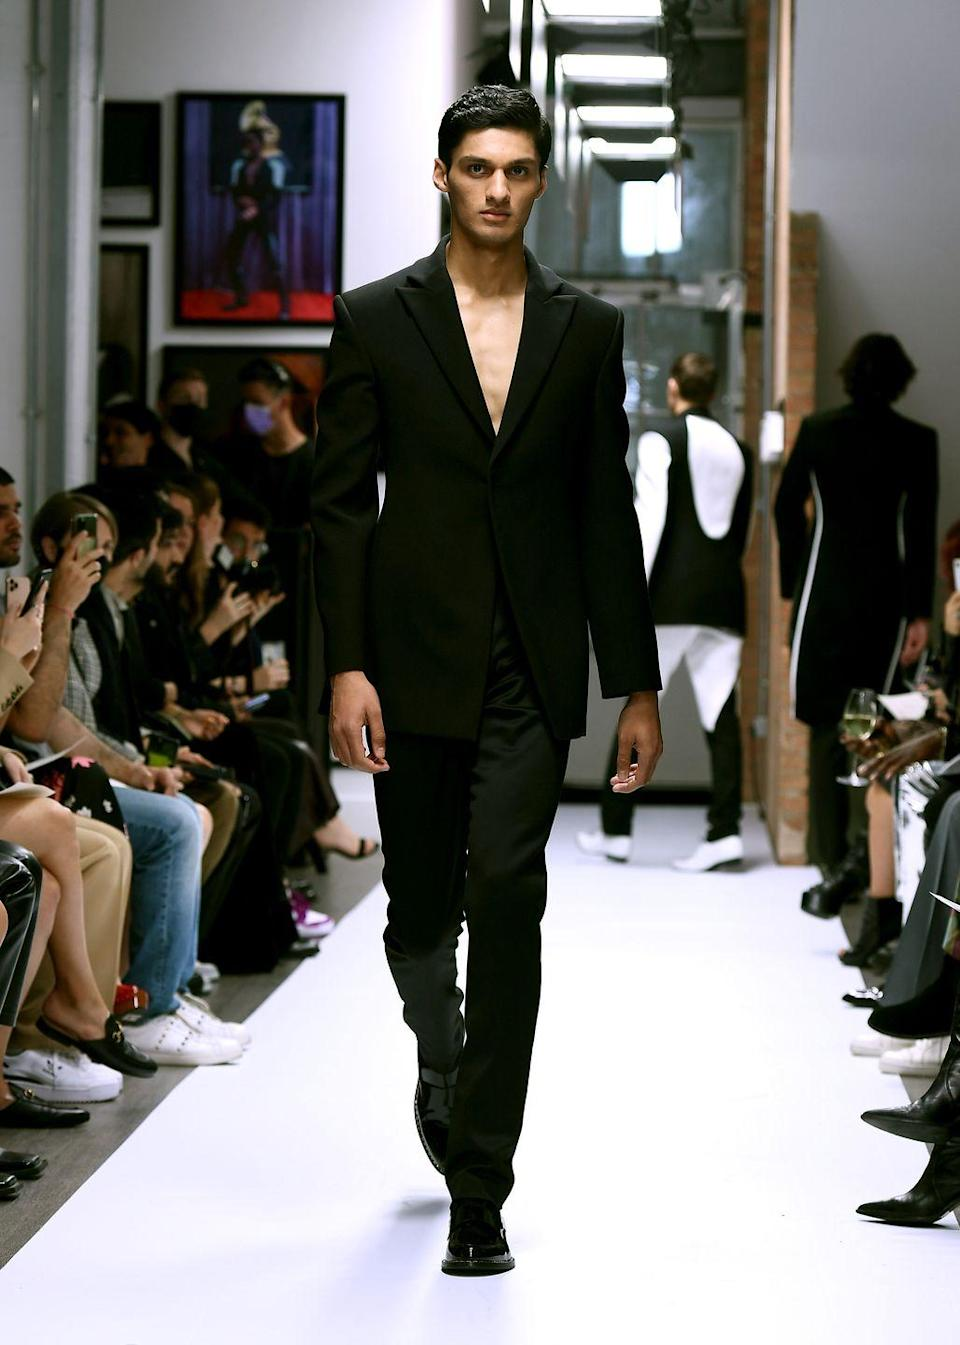 <p><strong>Wear: </strong>The suits</p>